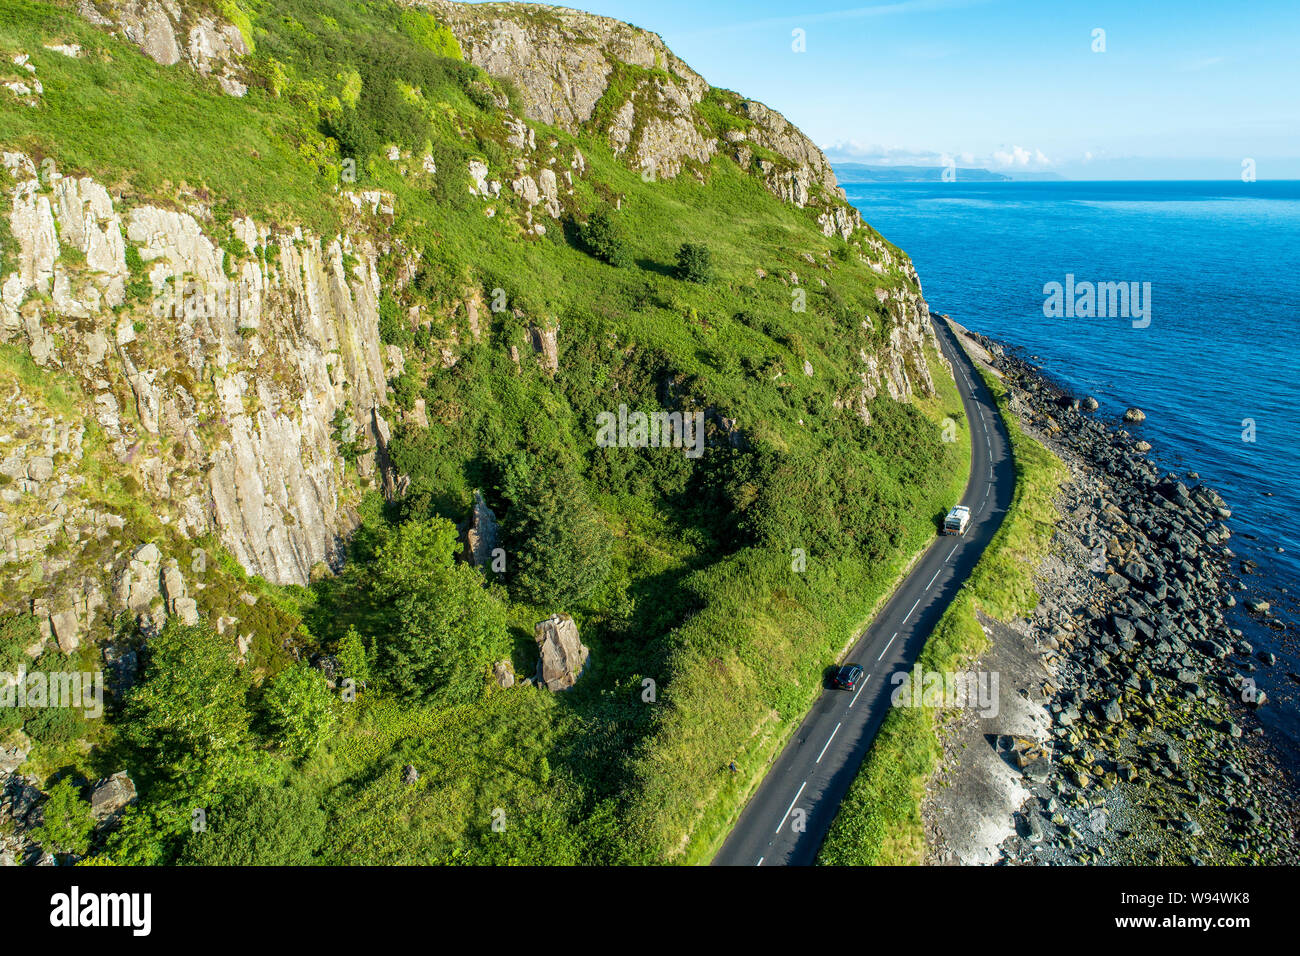 Northern Ireland, UK. Antrim Coast Road a.k.a Causeway Coastal Route near Ballygalley Head and resort. One of the most scenic coastal roads in Europe. Stock Photo